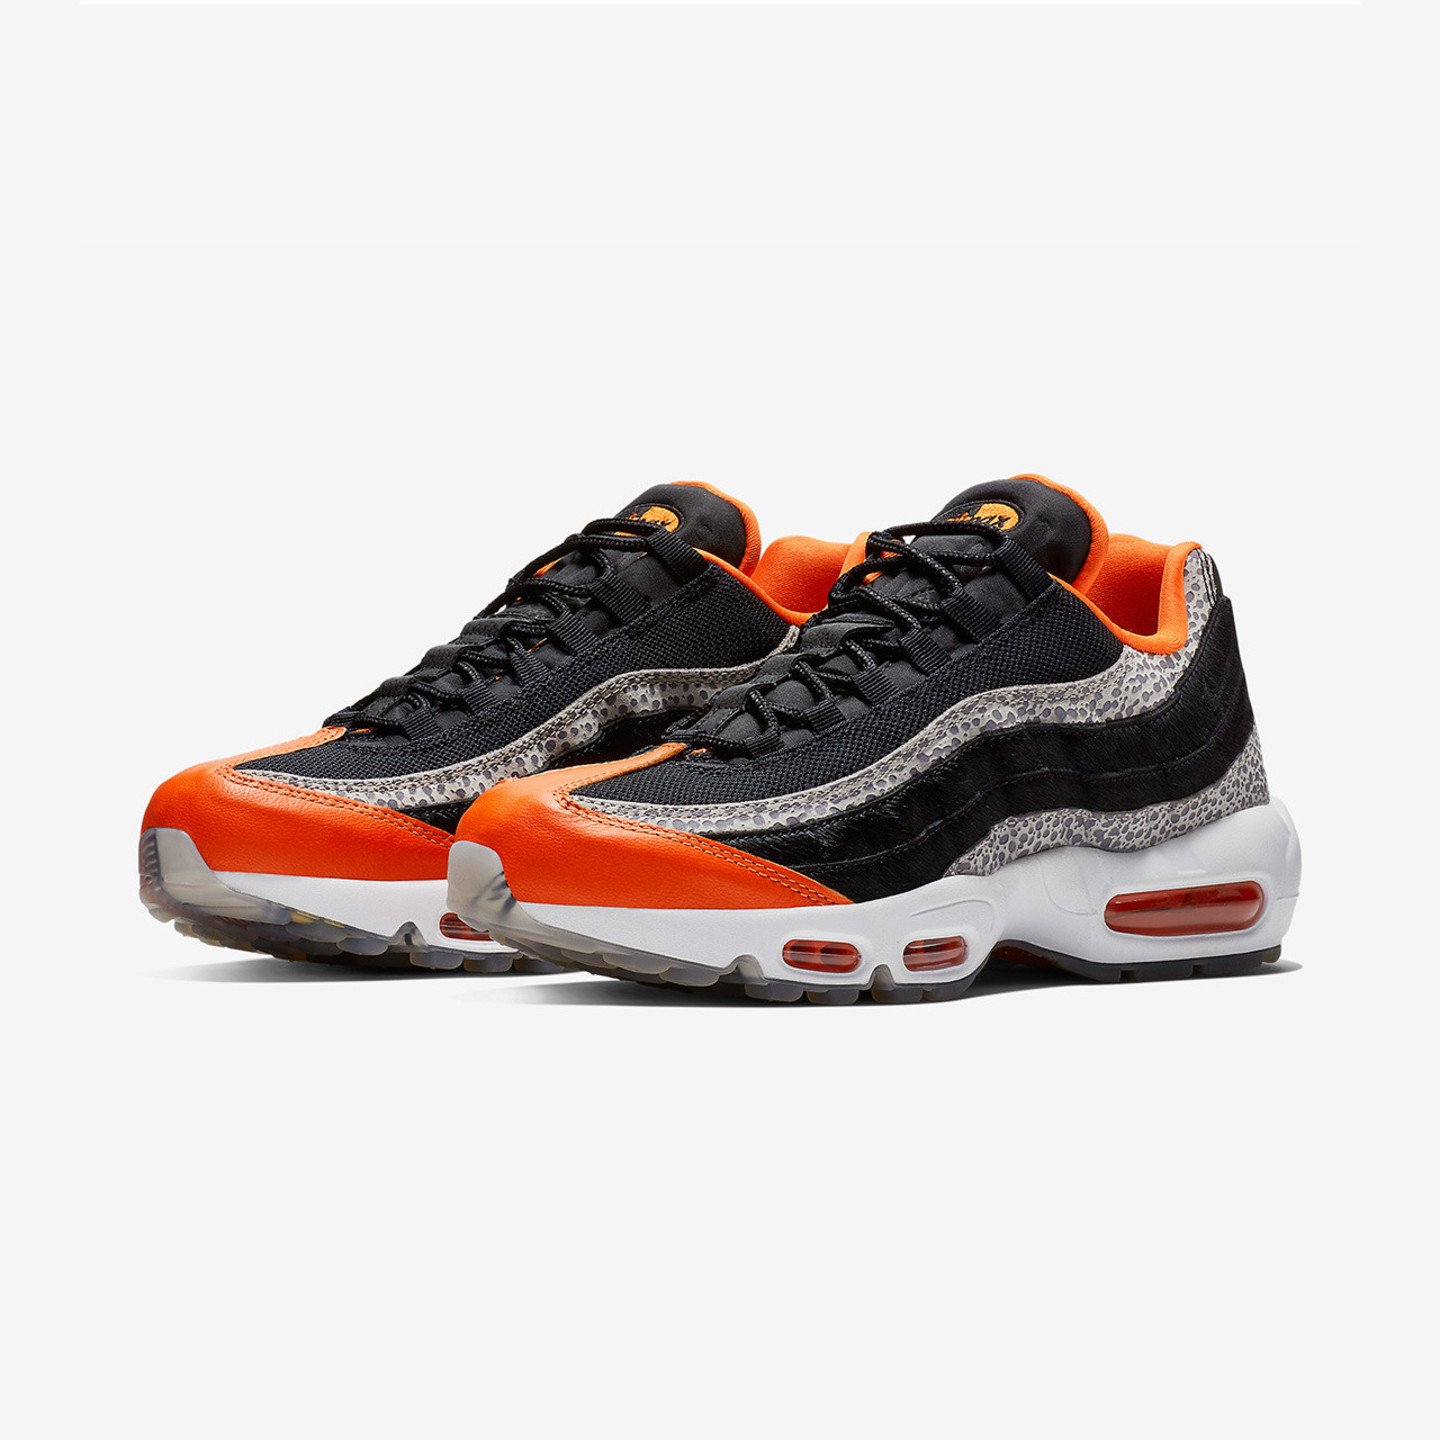 Nike Air Max 95 'Keep Rippin - Stop Slippin'  Black / Granite / Safety Orange AV7014-002